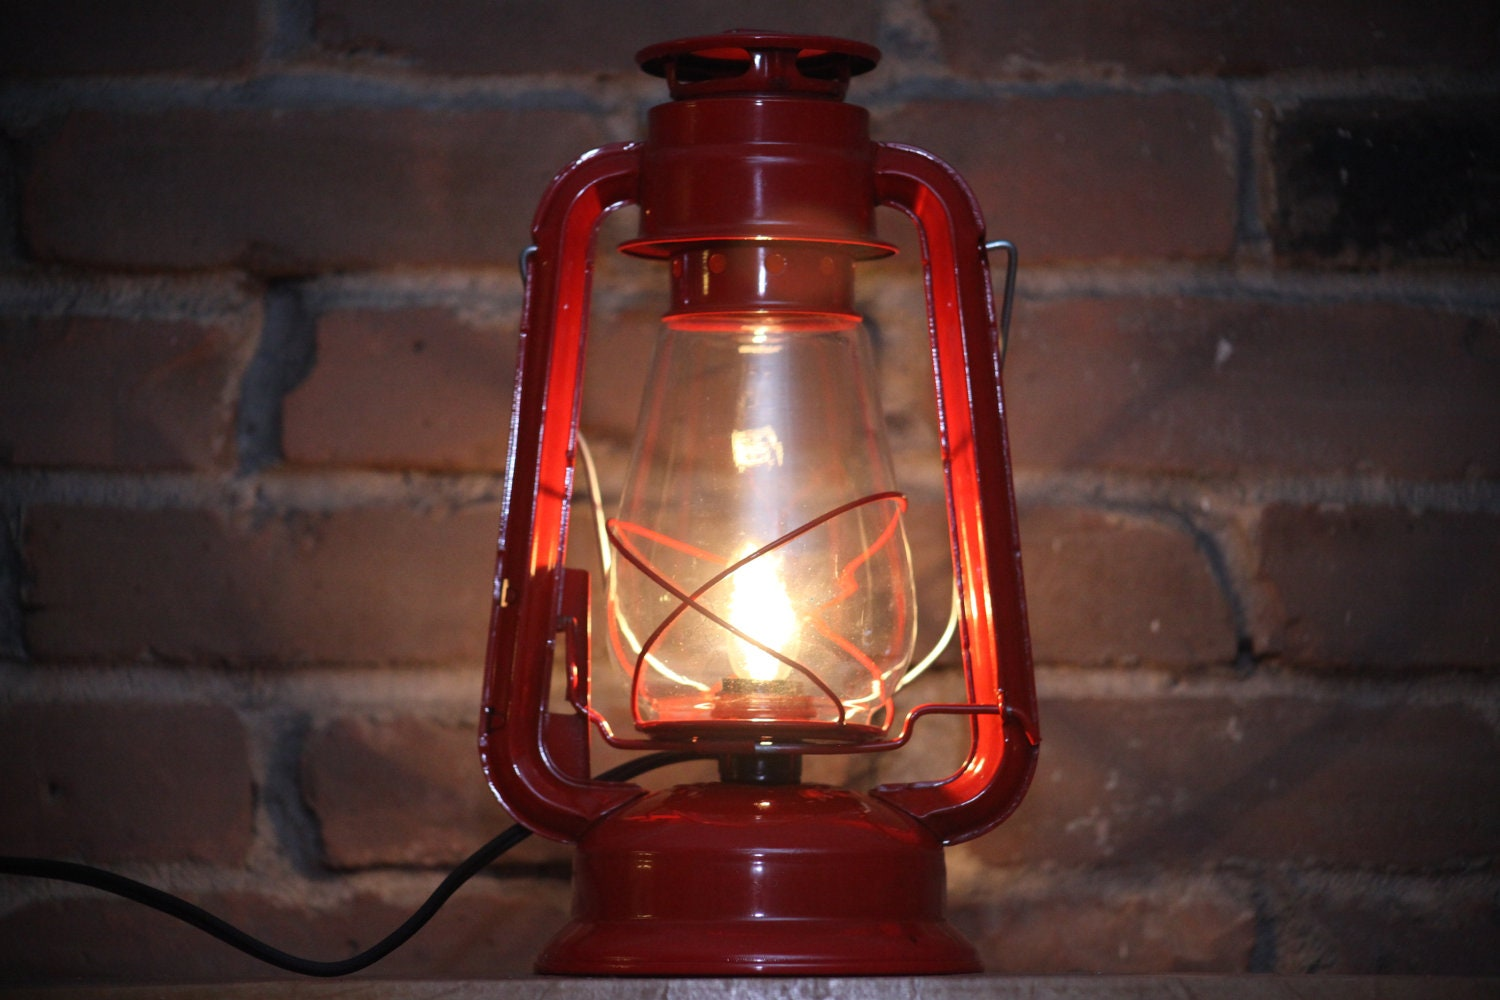 Hurricane Lantern Red With Clear Light Bulb Converted Kerosene